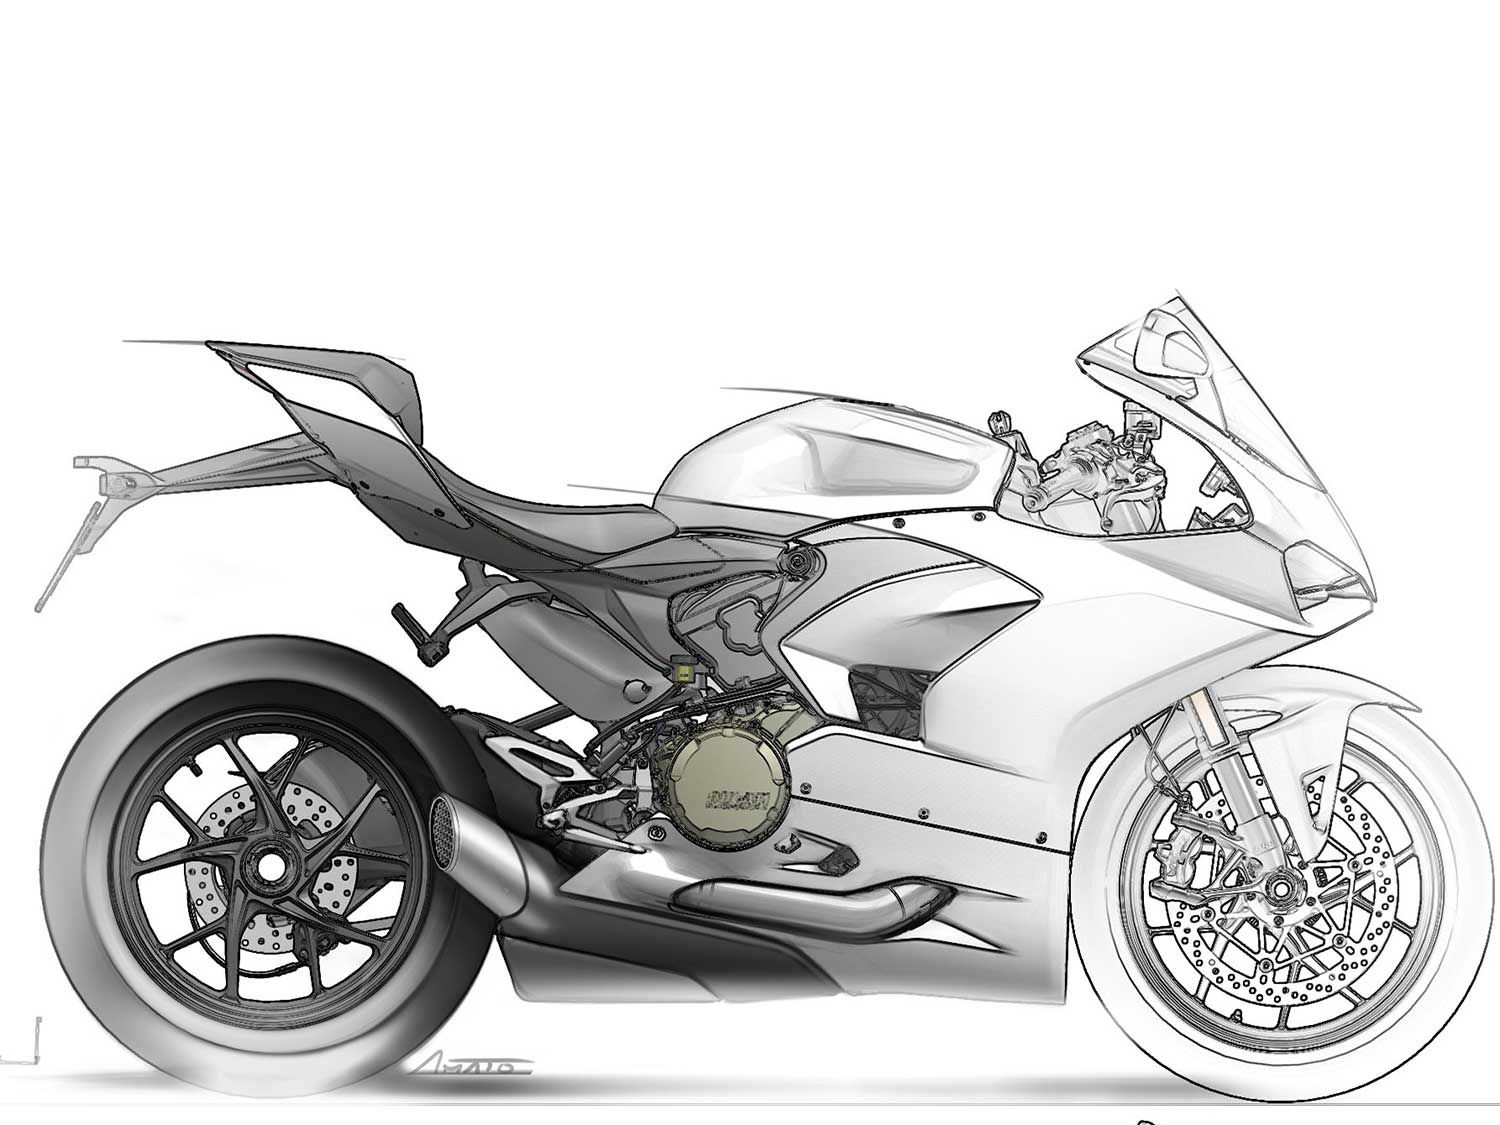 A late sketch of the Panigale V2. Too bad the MotoGP honeycomb grate over the exhaust outlet didn't make it to production.